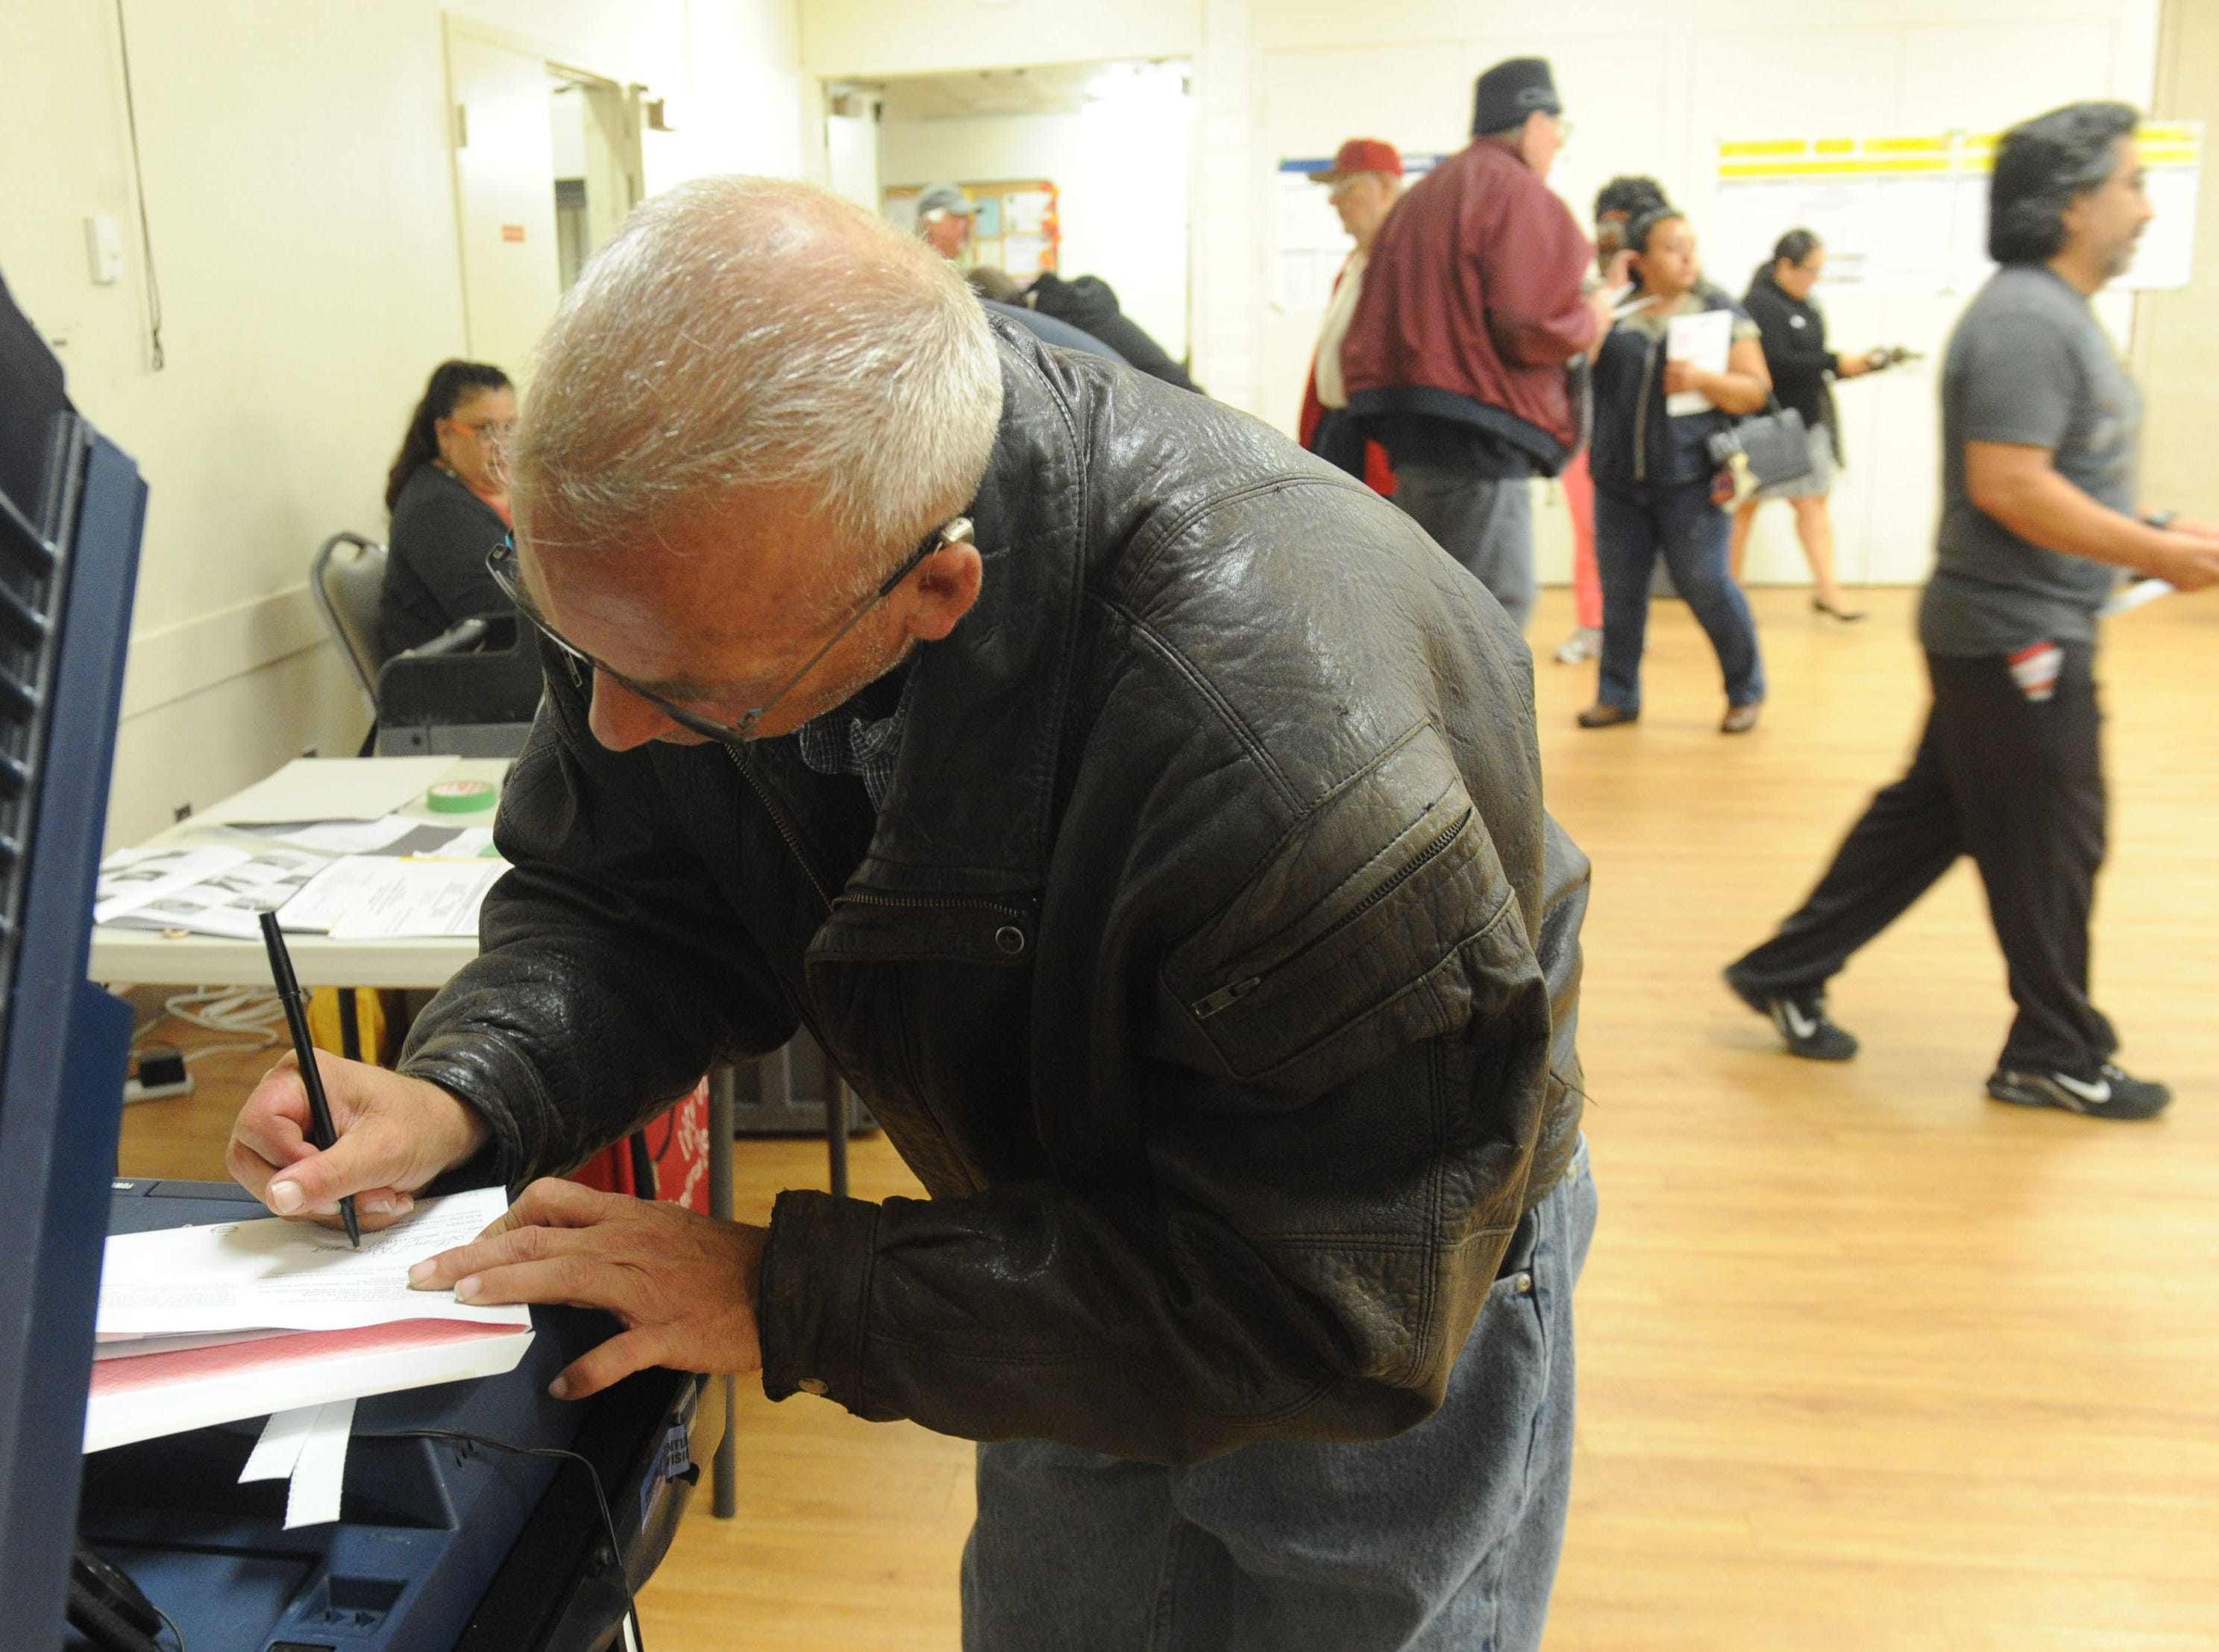 Steven Bienvenu (cq) was the first person to vote in the morning at Ventura Avenue Adult Center. The center had a line of about 20 people.